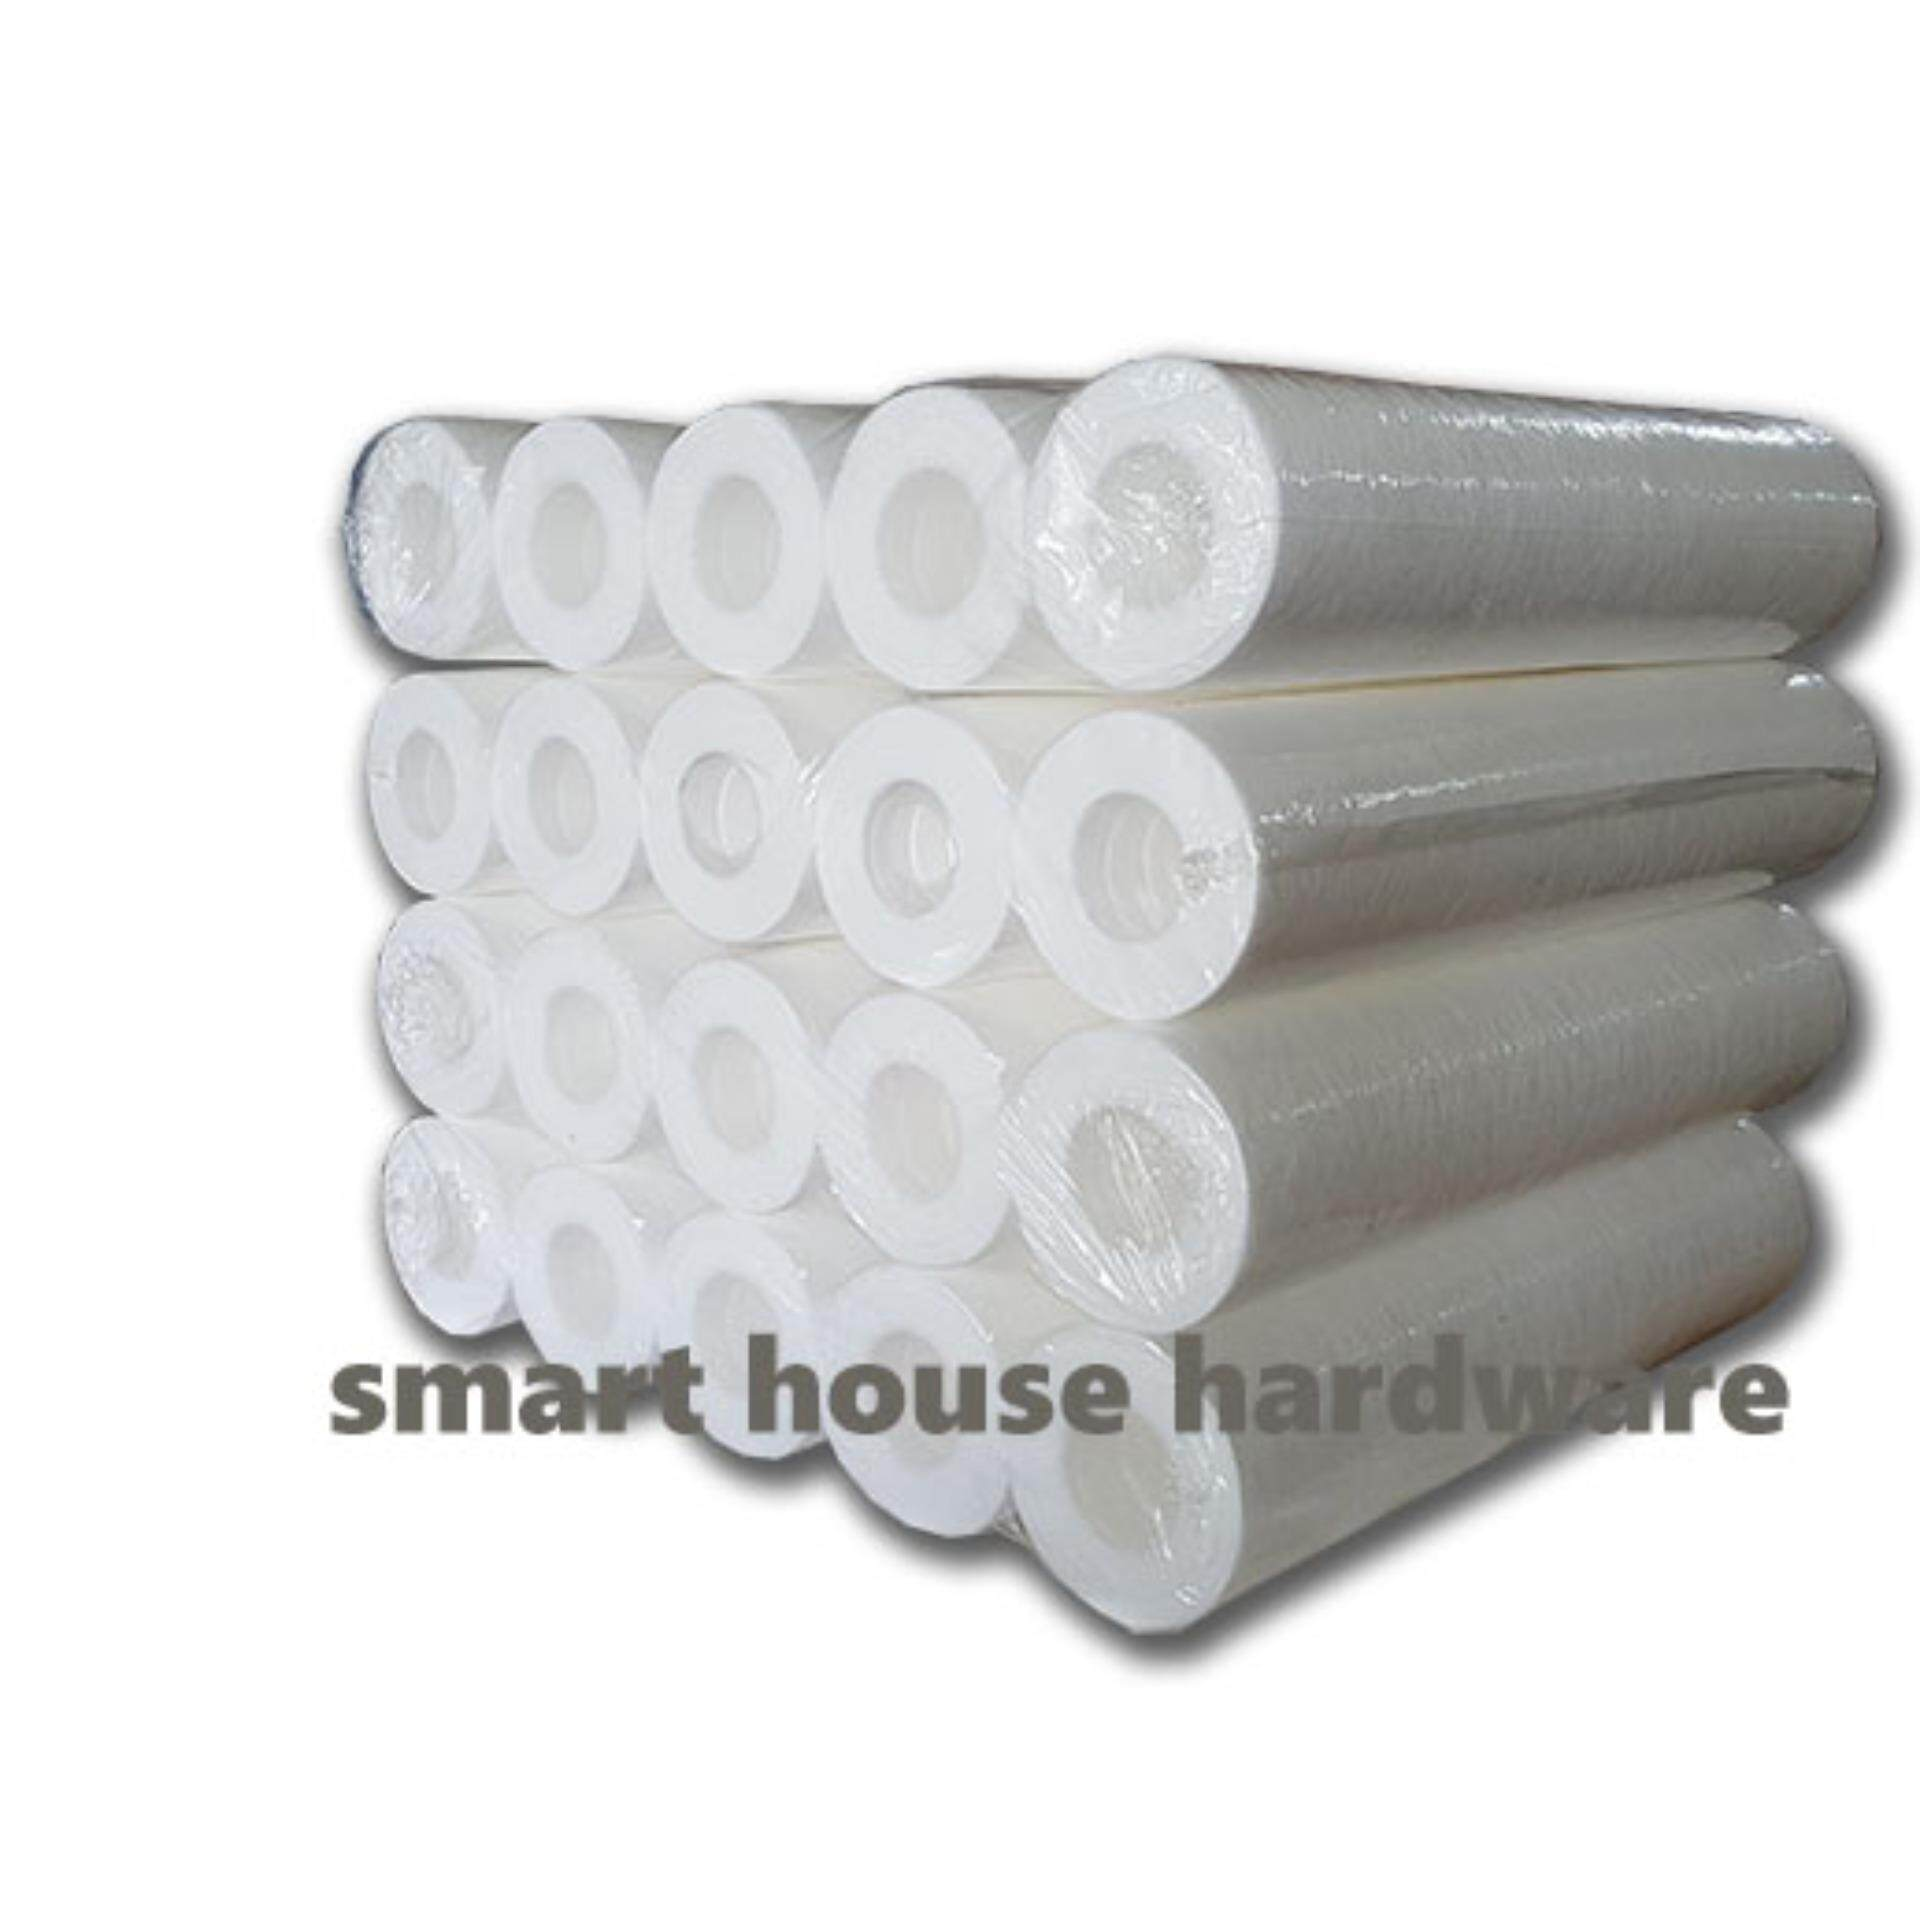 20pcs Pp Filter By Smart House Hardware.